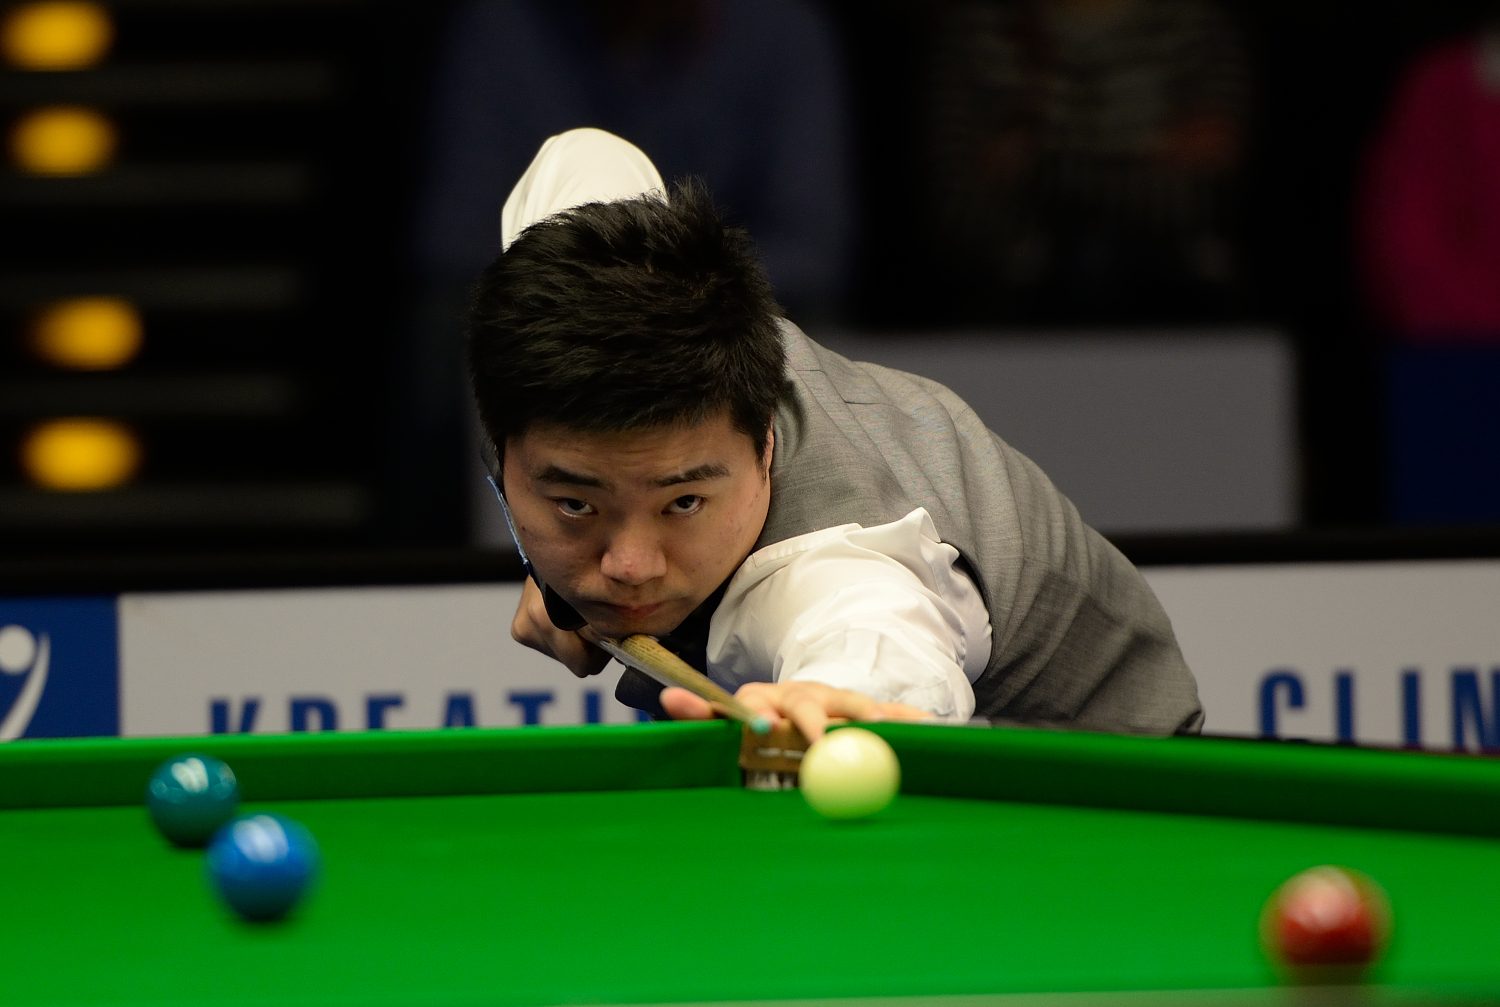 Ding_Junhui_at_Snooker_German_Masters_(DerHexer)_2015-02-05_02